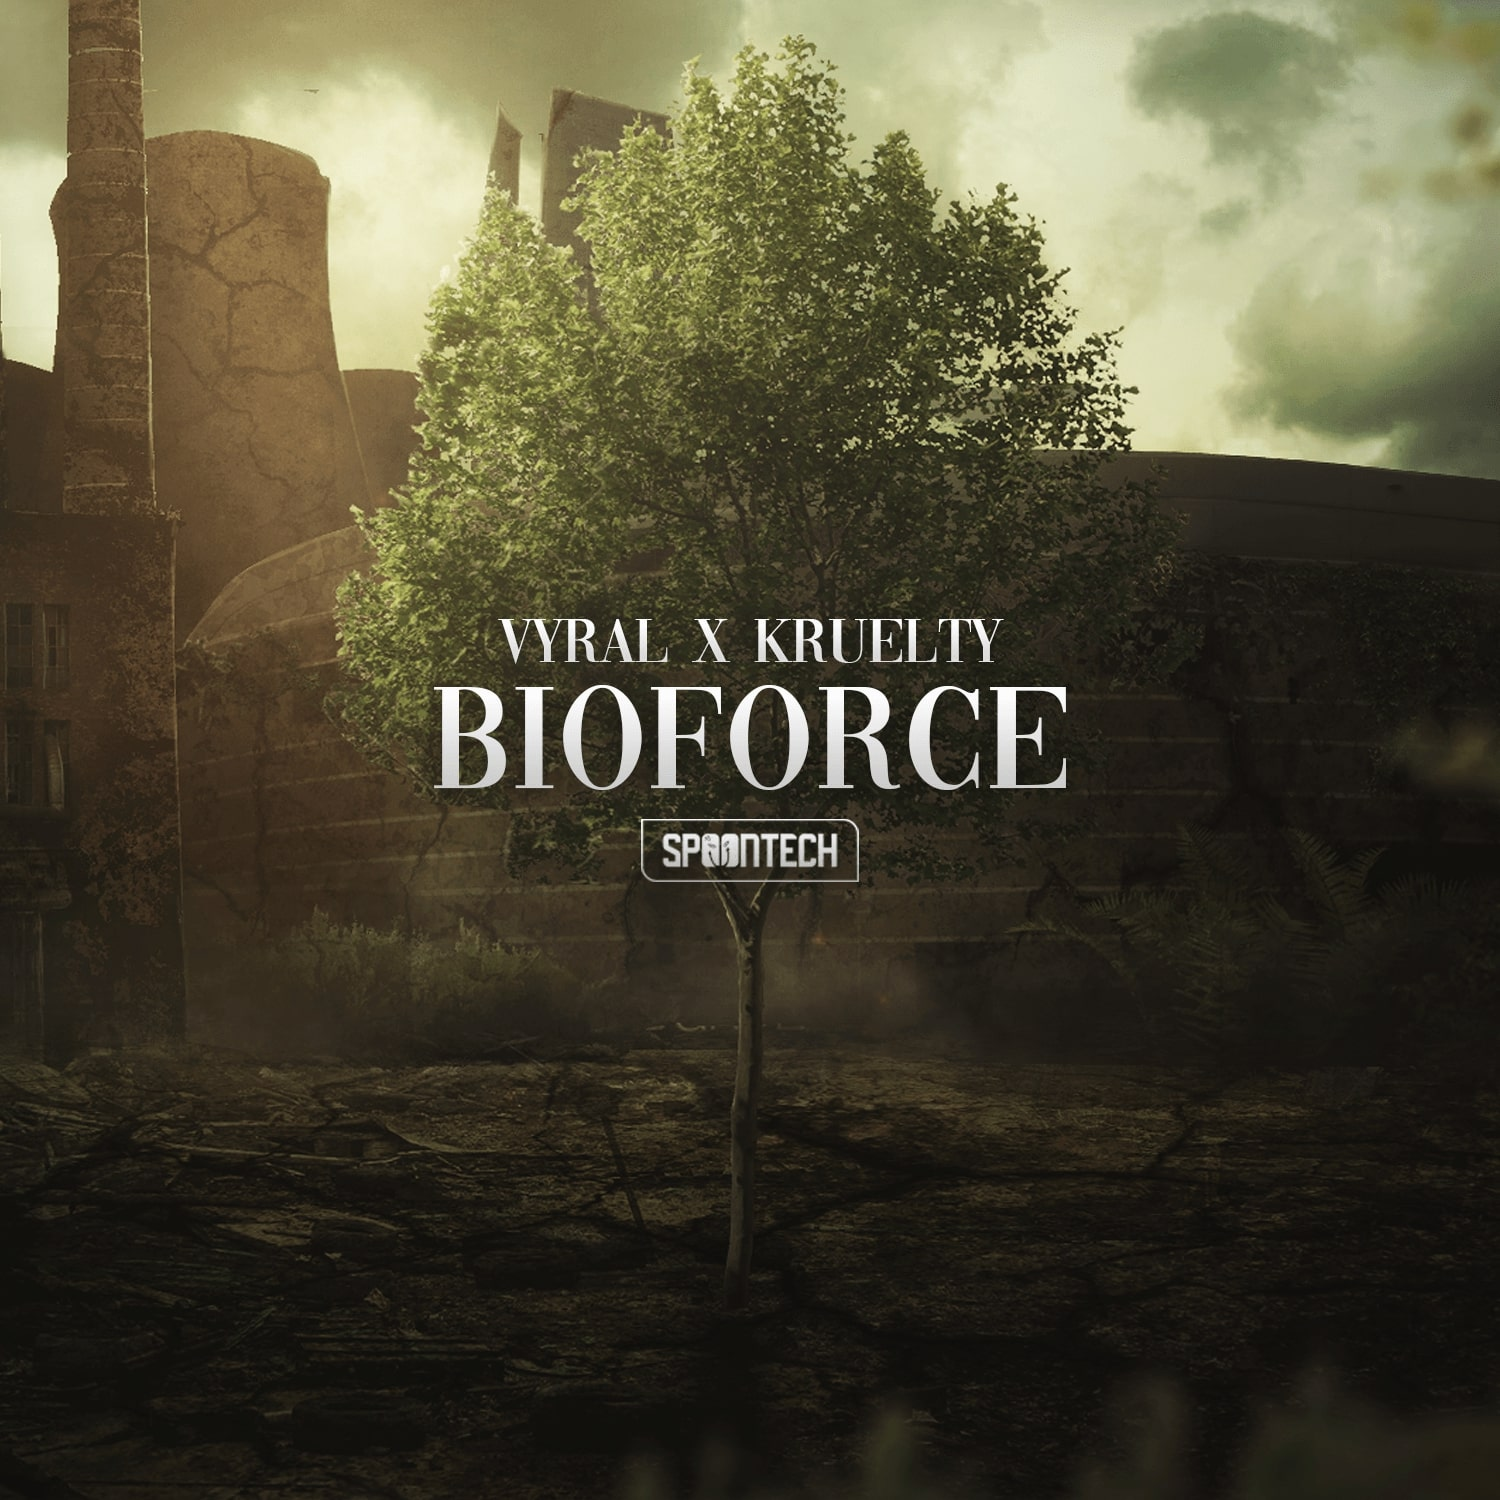 Bioforce Kruelty Vyral